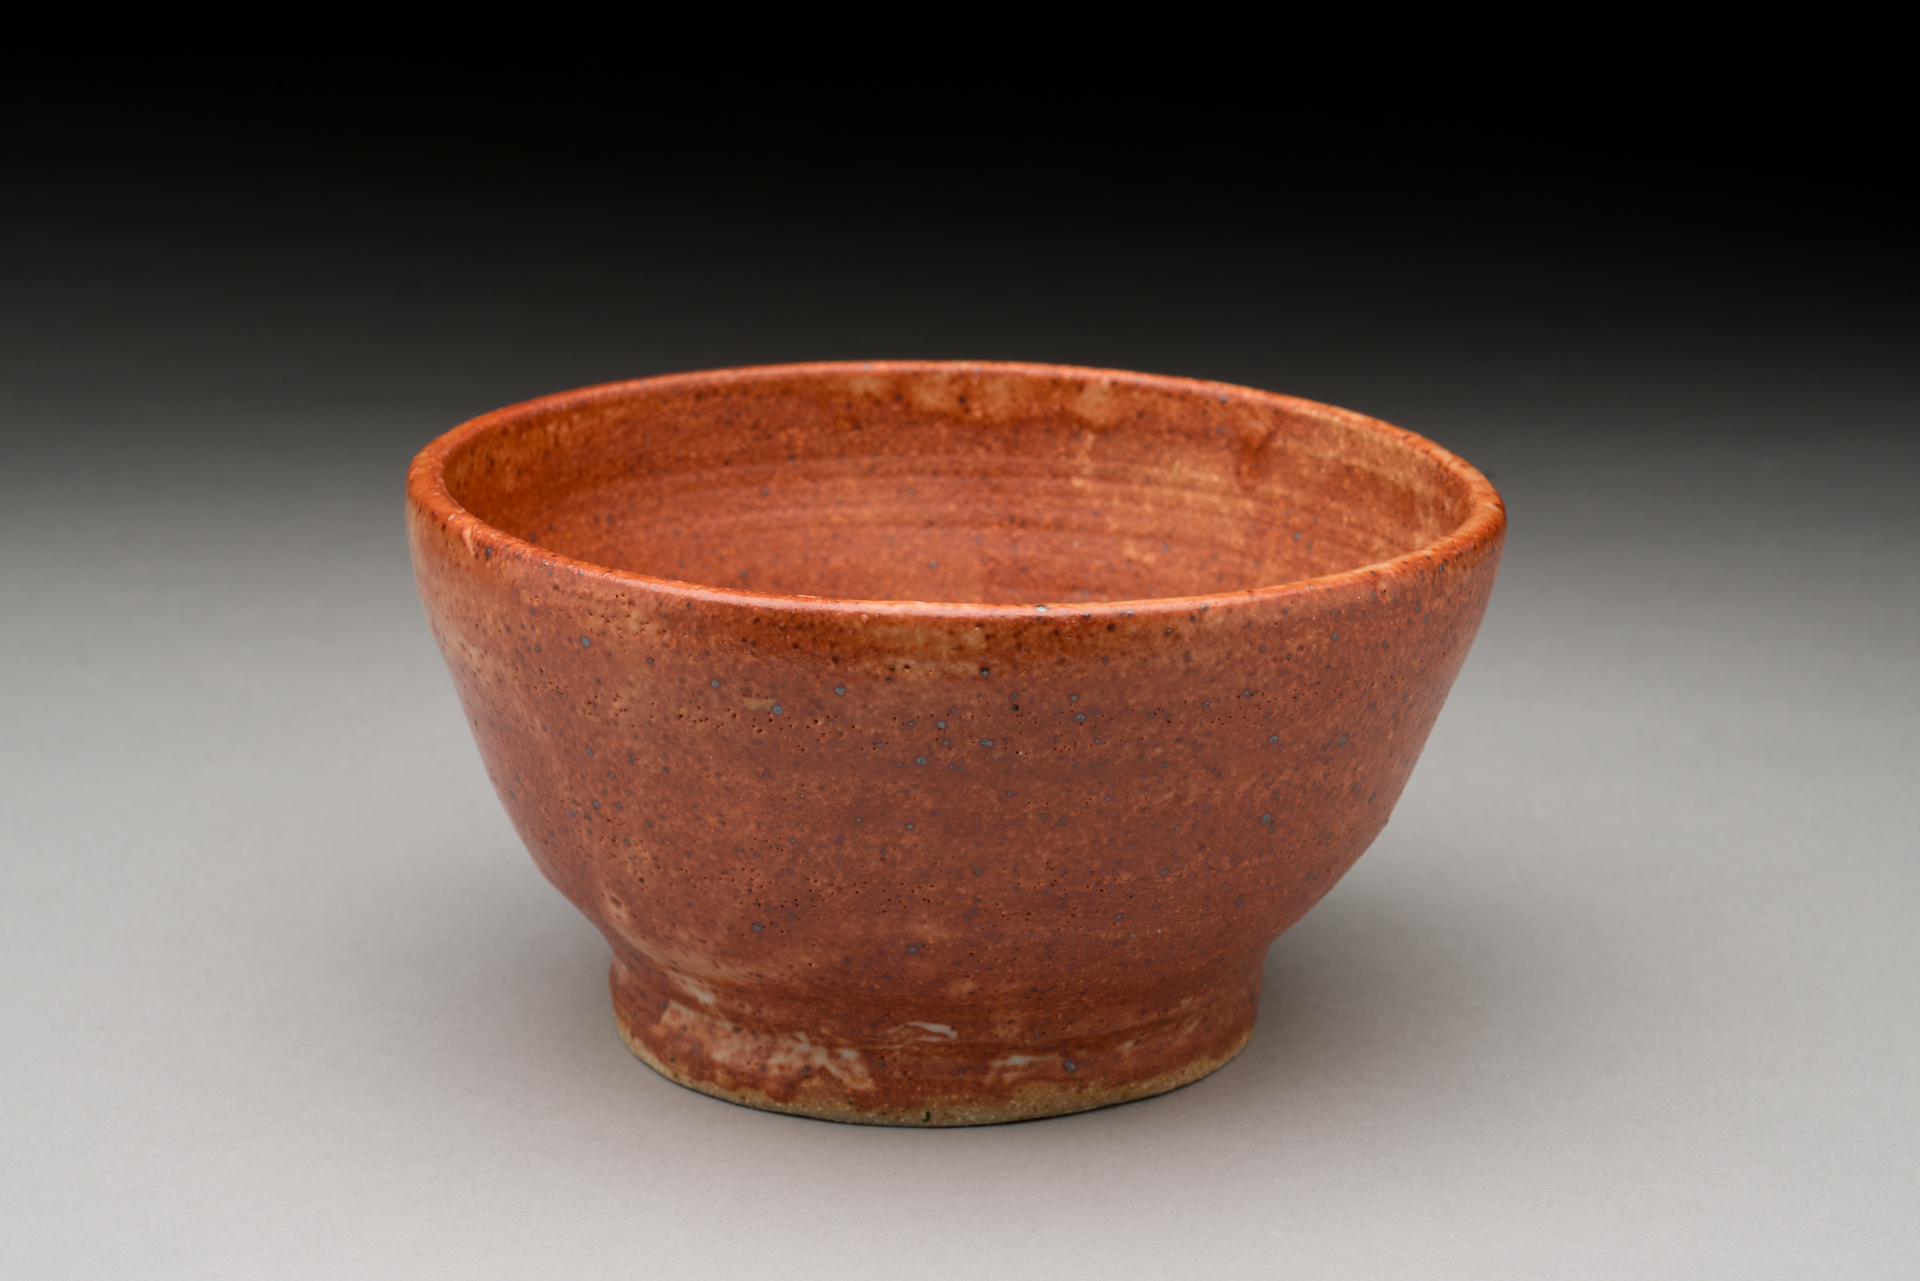 "Copper(Red) glaze tea bowl in a  footed bowl.-tea bowl-4'h,x3.5""w.-footed bowl,4''diameter, 2016"